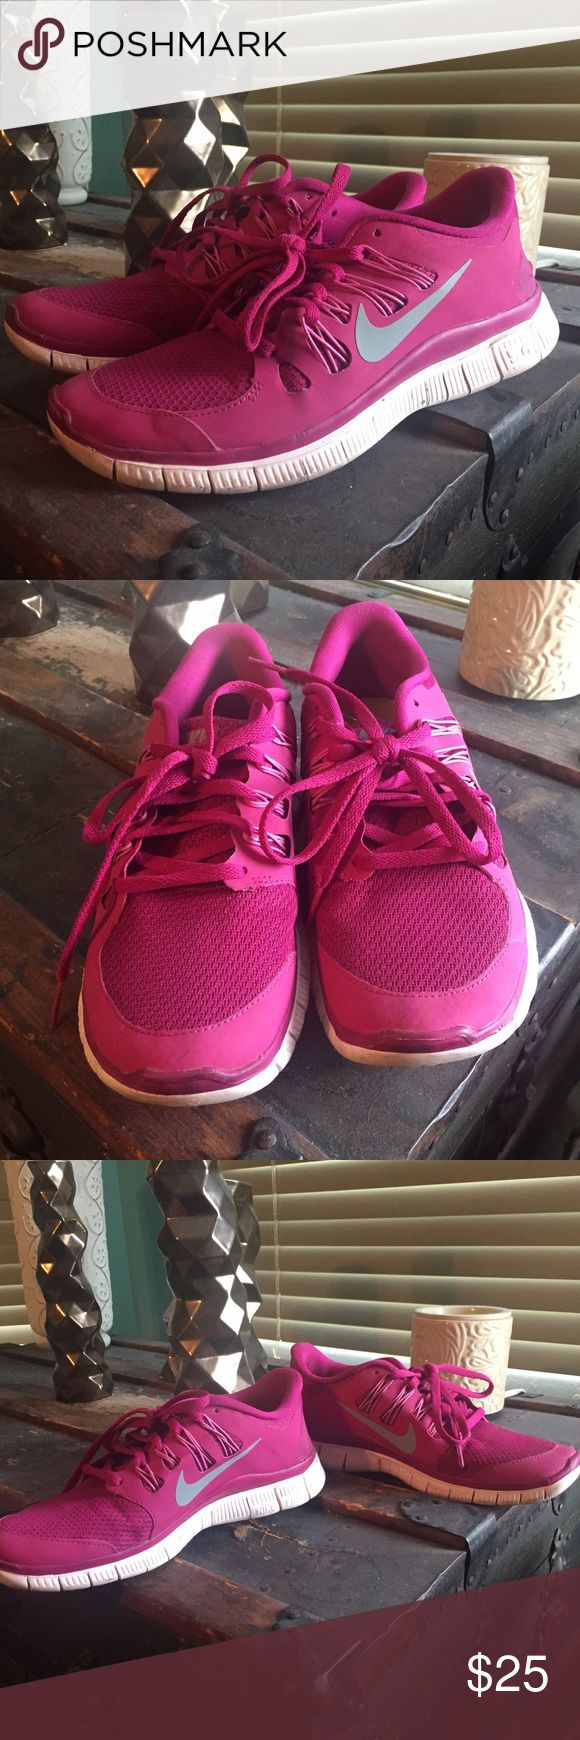 finest selection a82a7 4b2a1 ... Chaussure pour Homme Gris Nike Roshe Run Achat Pink Nike Free Run 5.0  ...